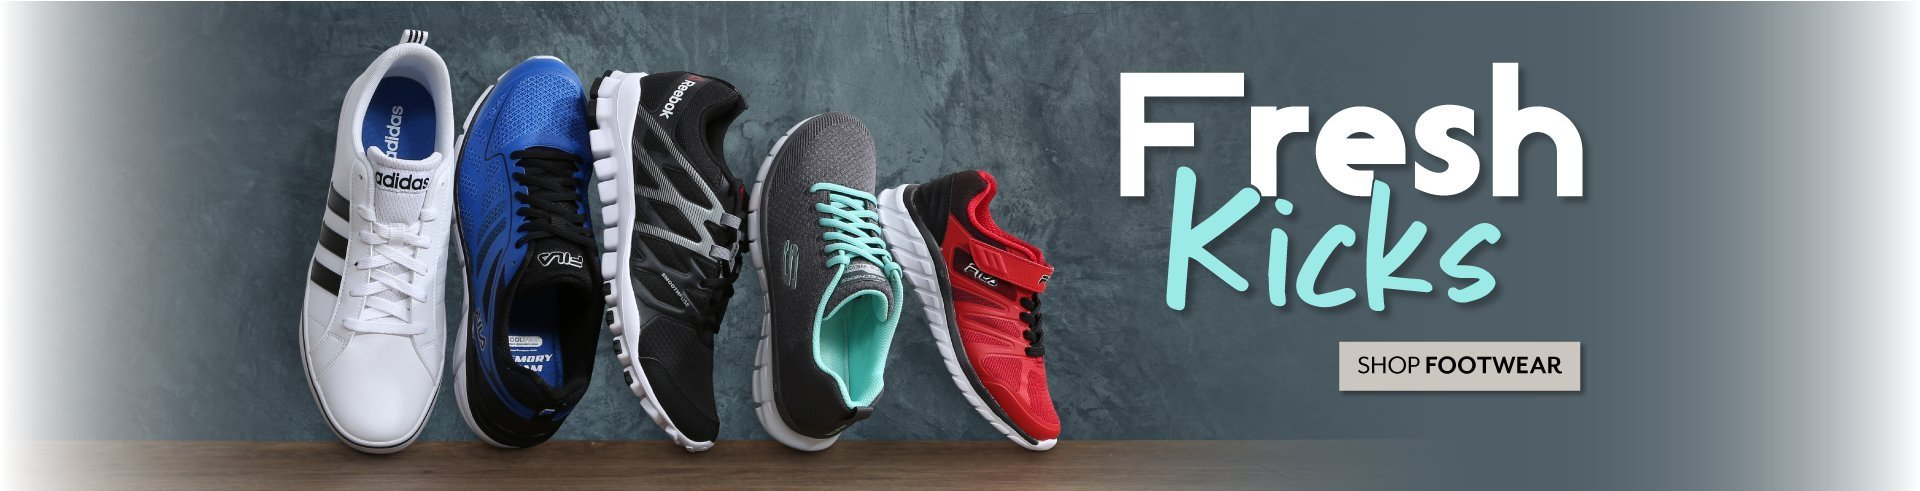 Fresh Kicks - Shop Back to School Shoes and Footwear at Burkes Outlet